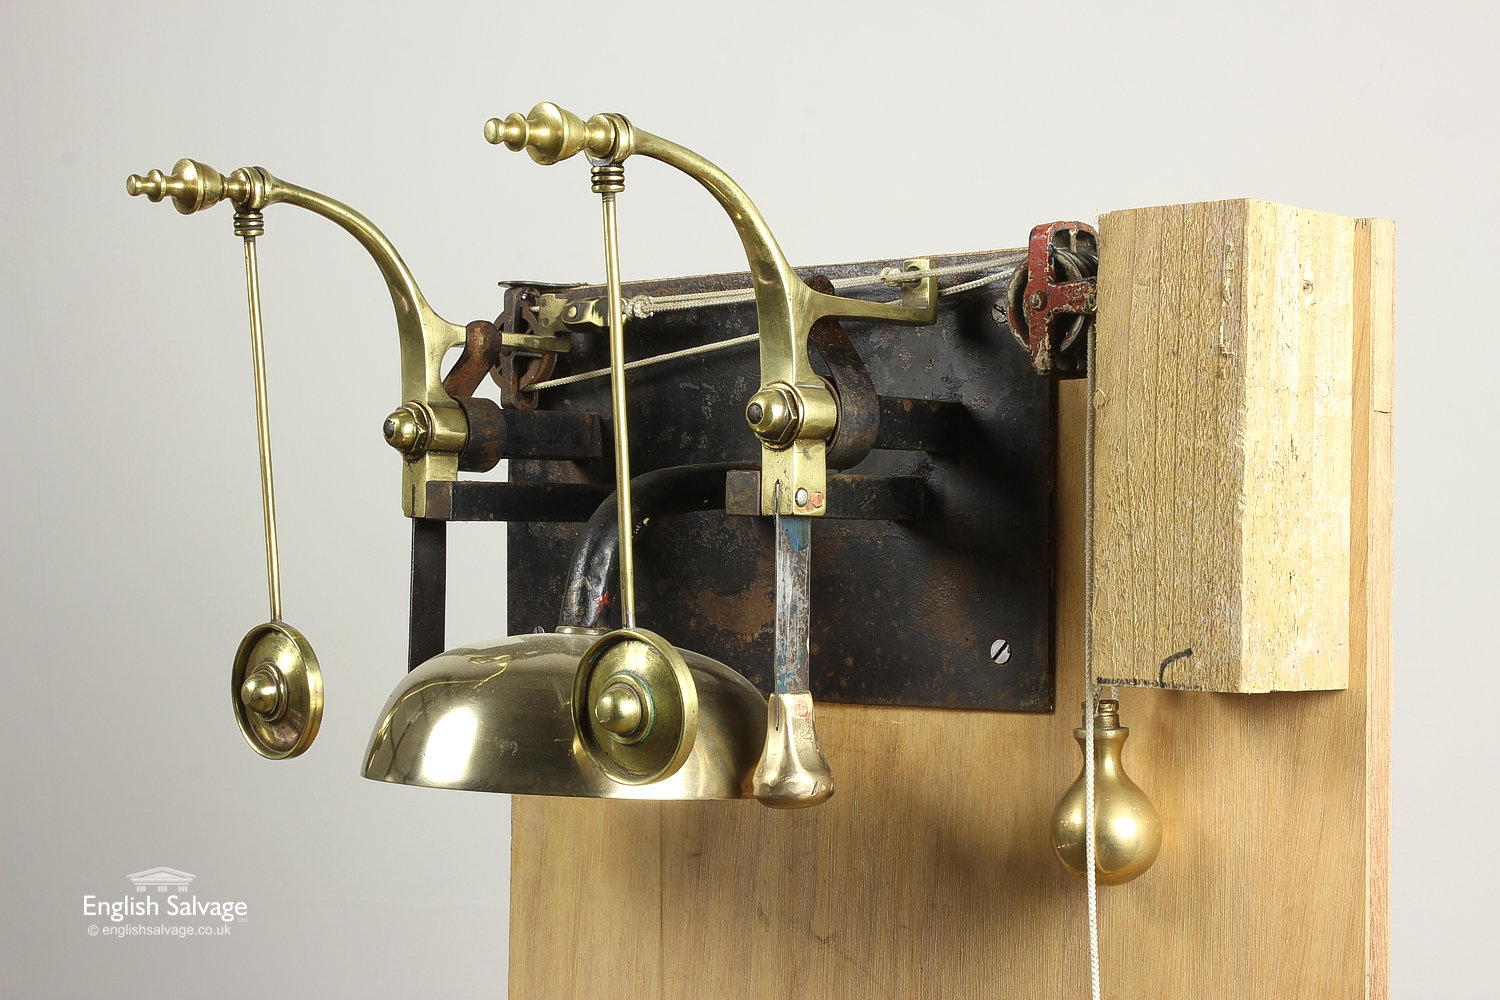 Old Servants Bell Assembly Mounted On Board